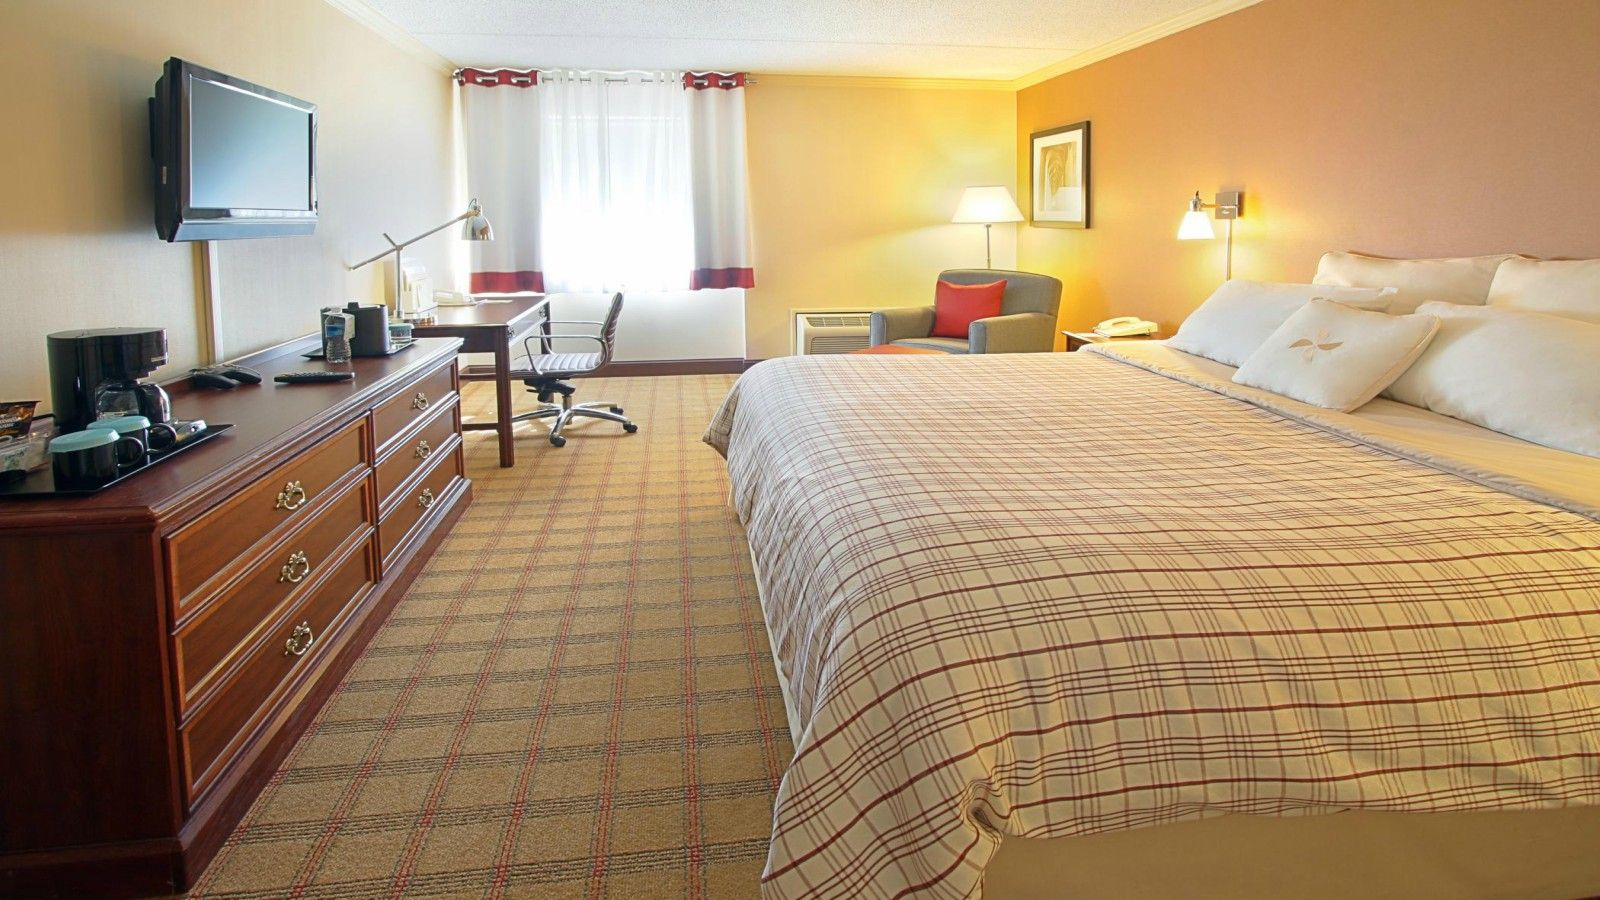 York, PA Accommodations - Accessible Guest Room